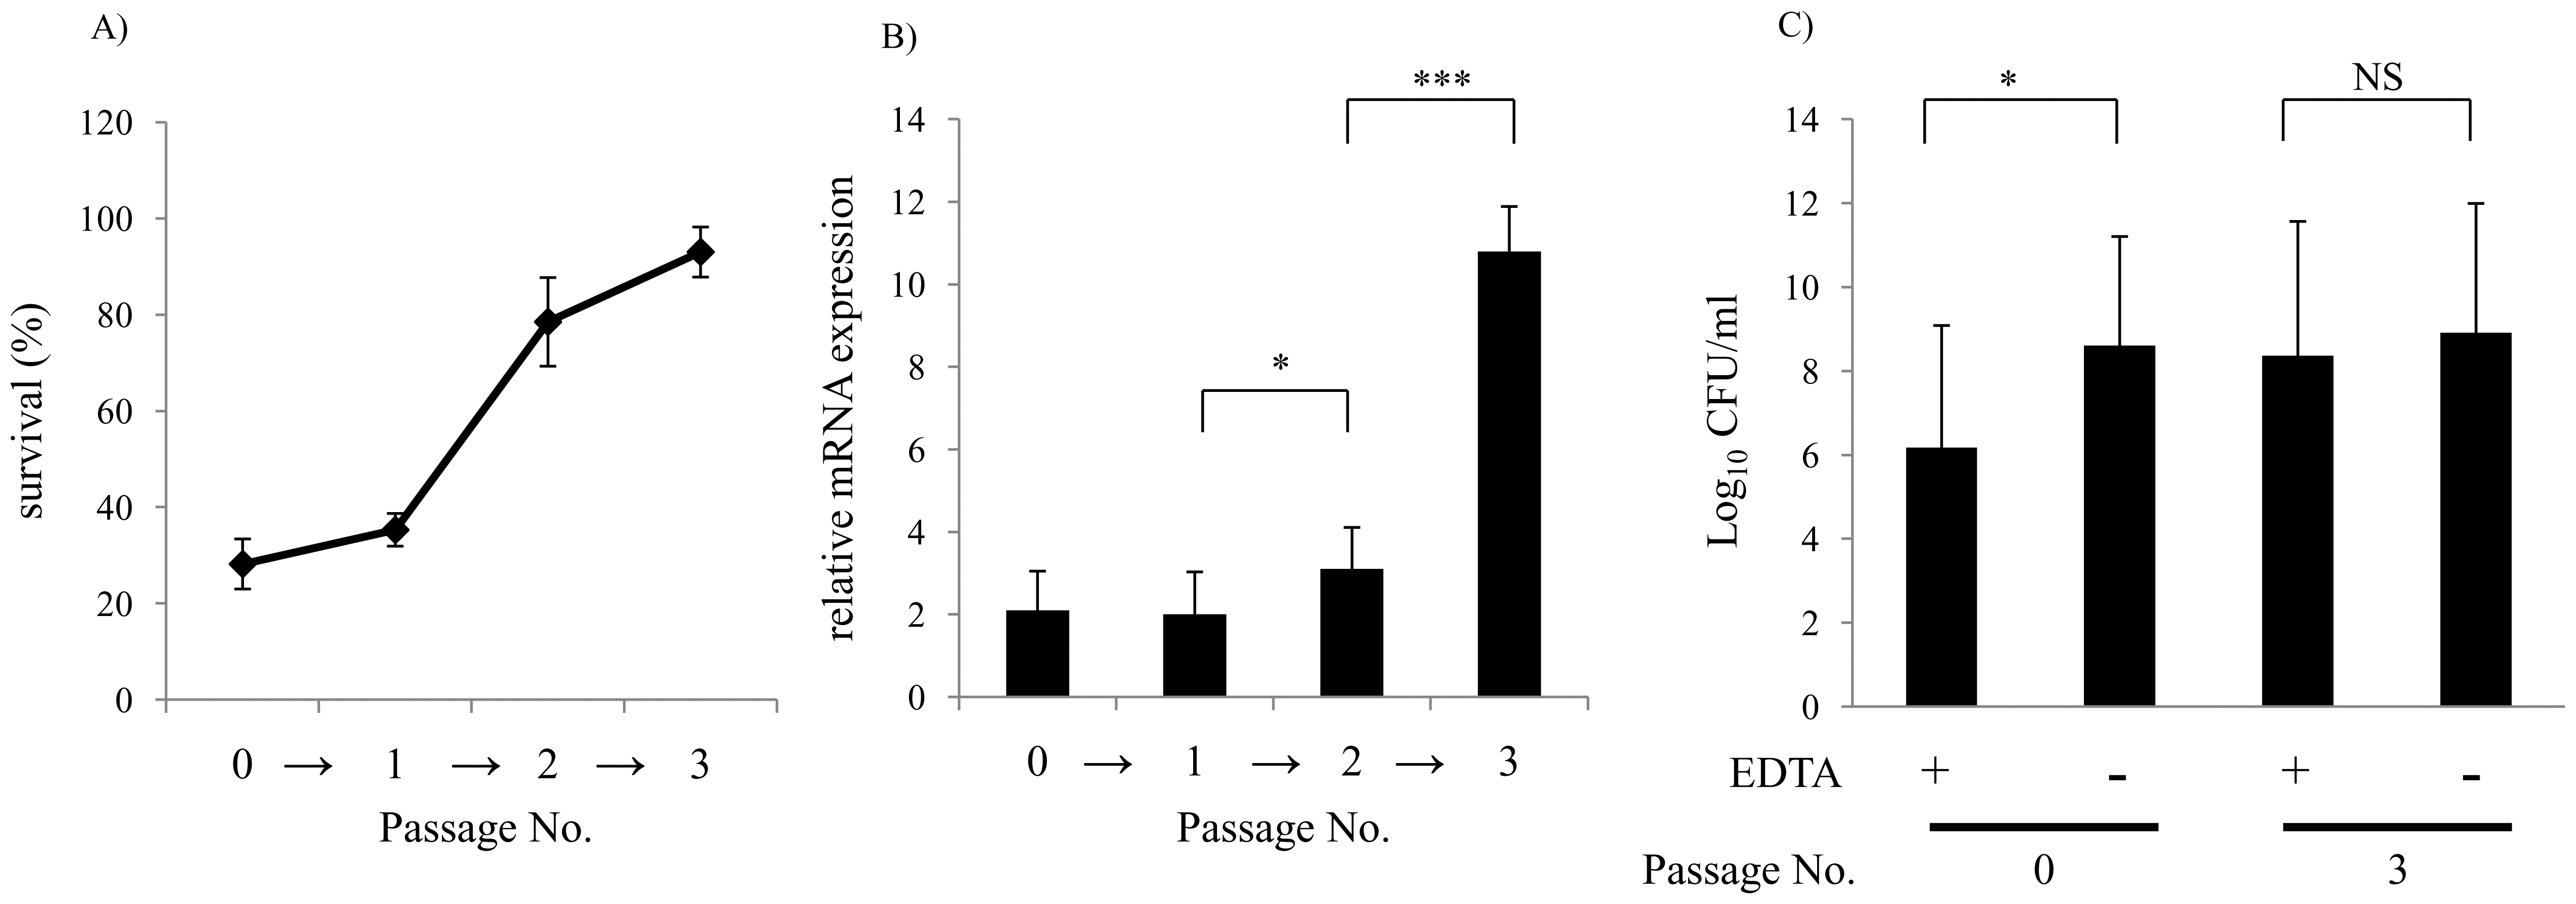 Repeated serum treatment selects for serum resistance, increased <i>vacJ</i> expression, and increased outer membrane stability.